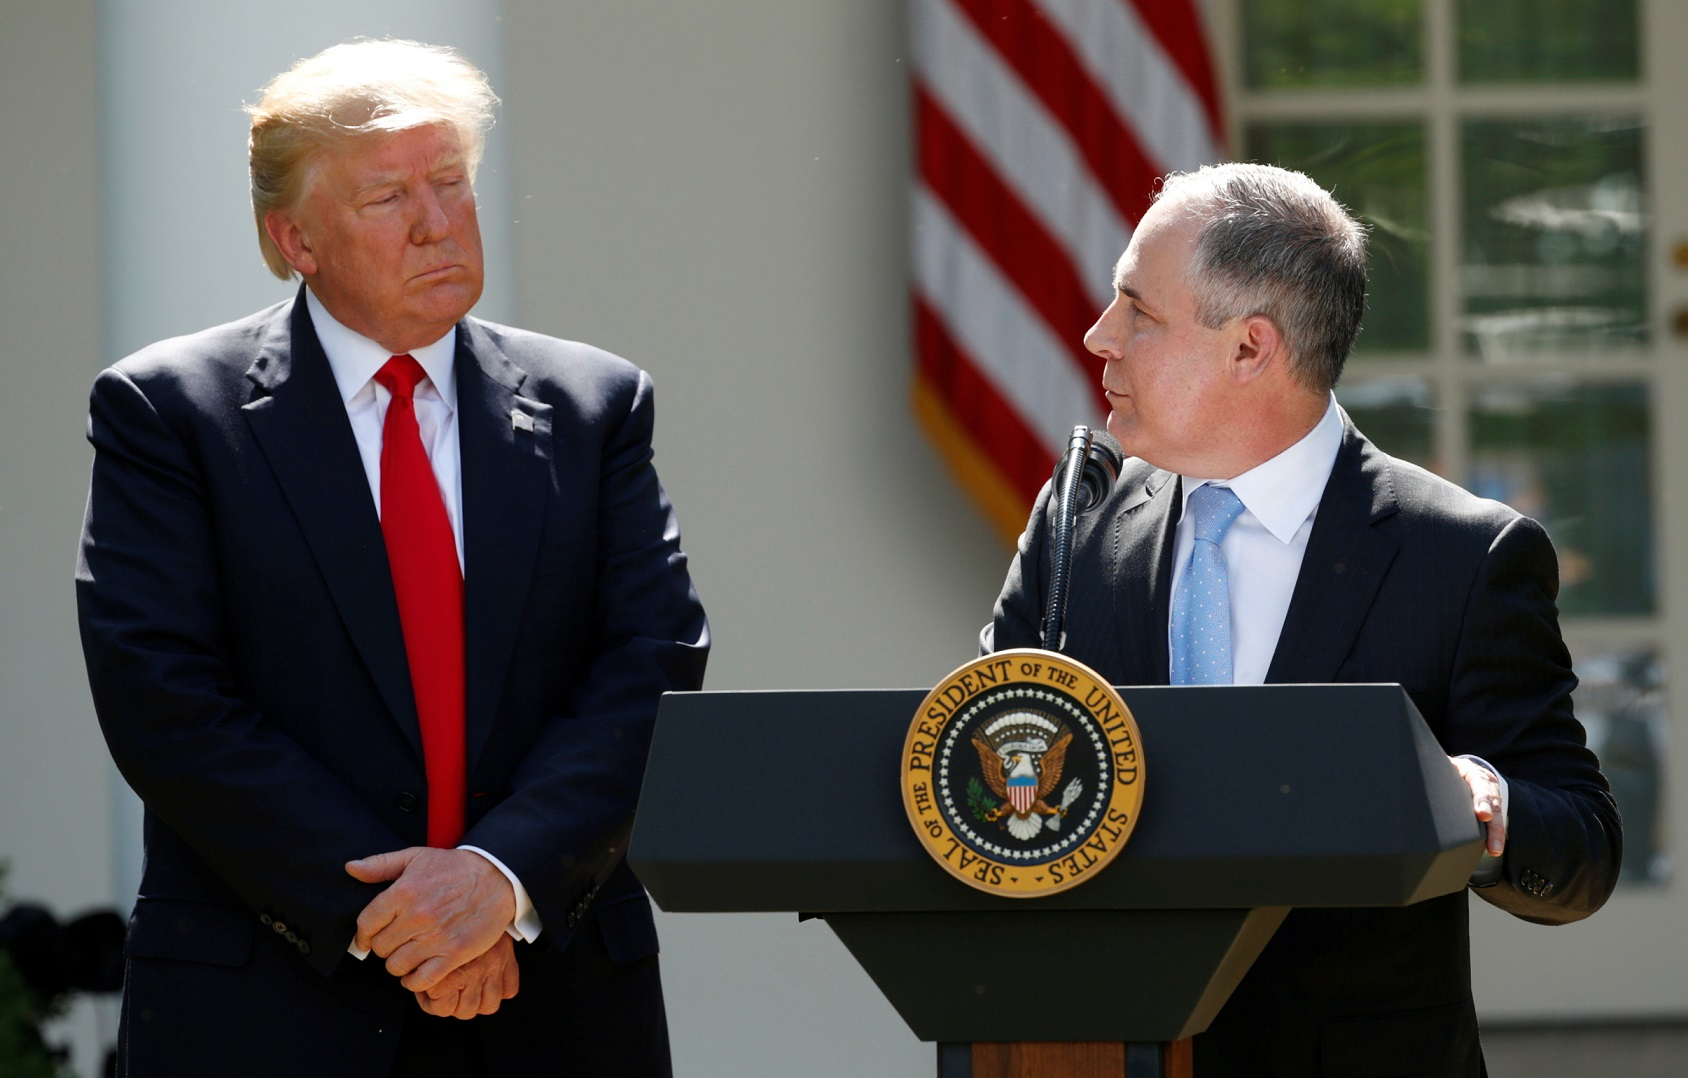 U.S. President Donald Trump (L) listens to EPA Administrator Scott Pruitt after announcing his decision that the United States will withdraw from the Paris Climate Agreement, in the Rose Garden of the White House in Washington, U.S., June 1, 2017. REUTERS/Kevin Lamarque     TPX IMAGES OF THE DAY - HP1ED611KN41S